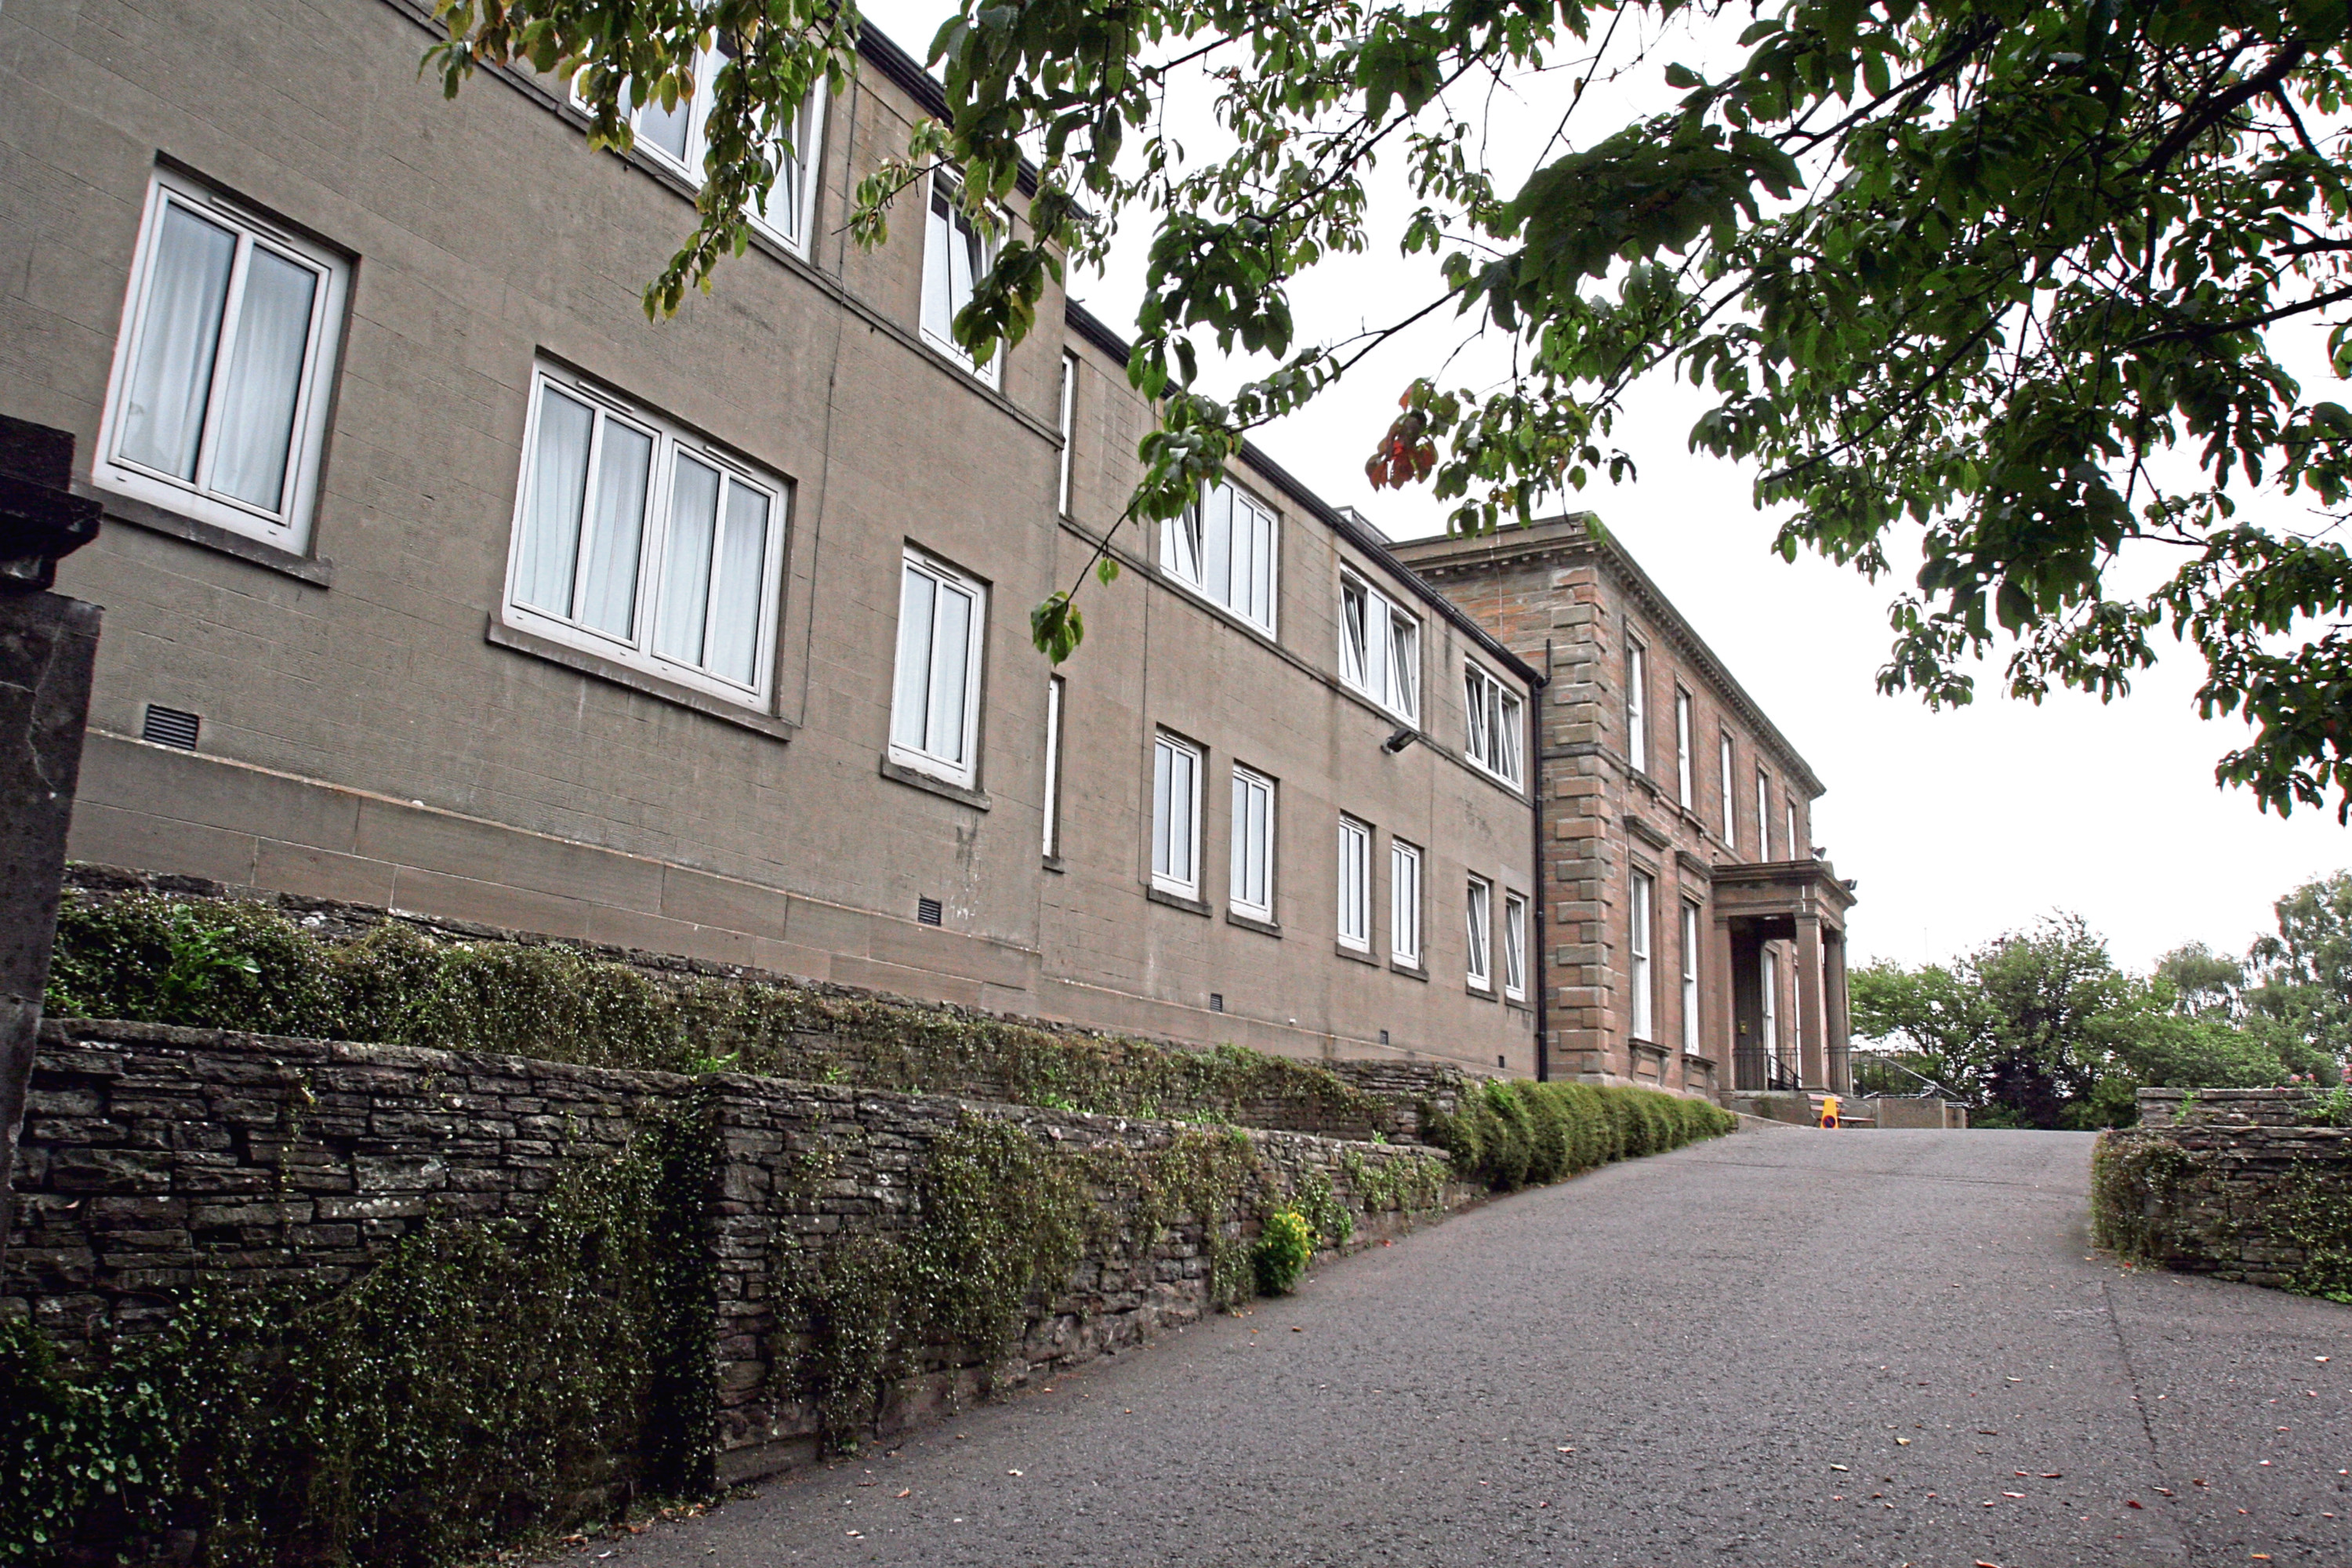 Calls have been made to re-open Fernbrae Hospital to help treat patients with coronavirus.